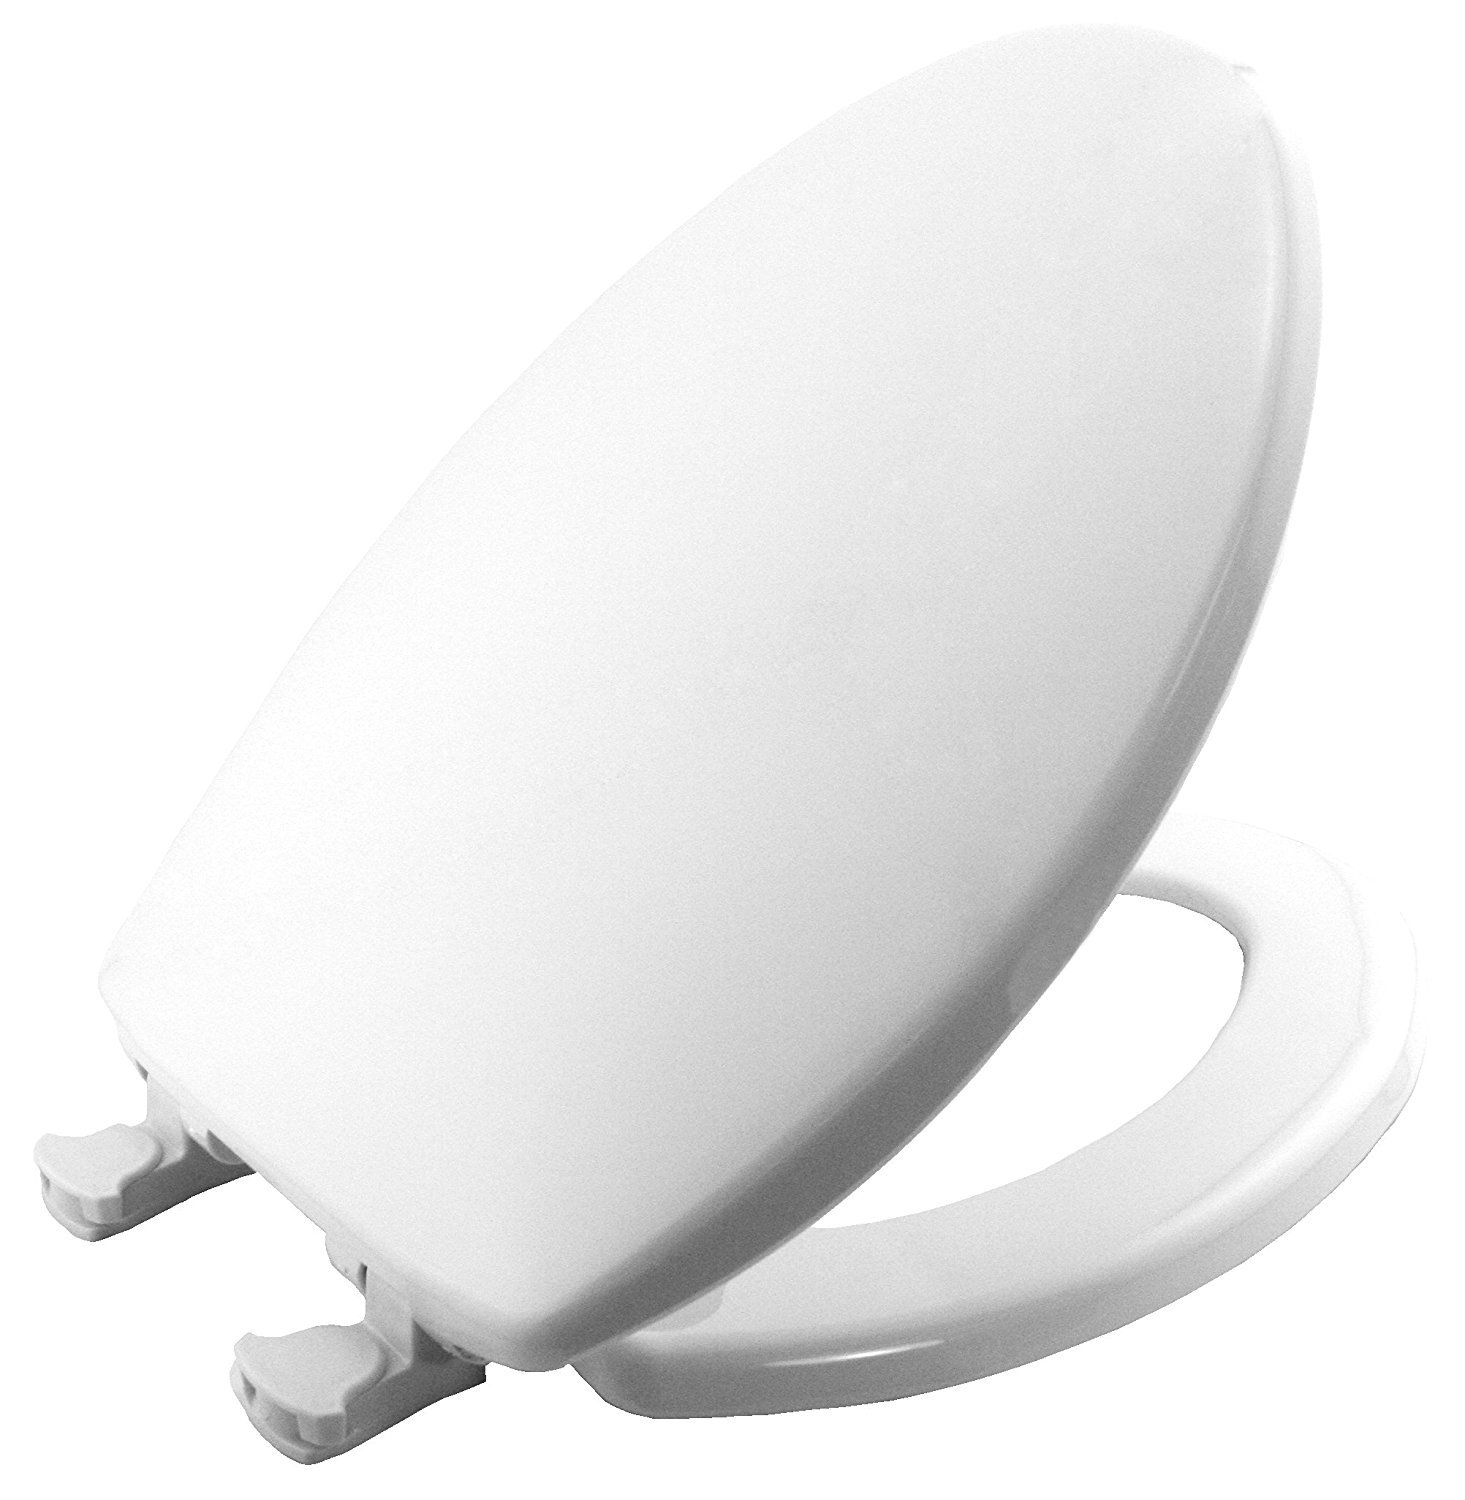 Mayfair Solid Plastic Toilet Seat featuring Easy-Clean & Change Hinges and STA-TITE Seat Fastening System, Elongated, White, 180EC 000